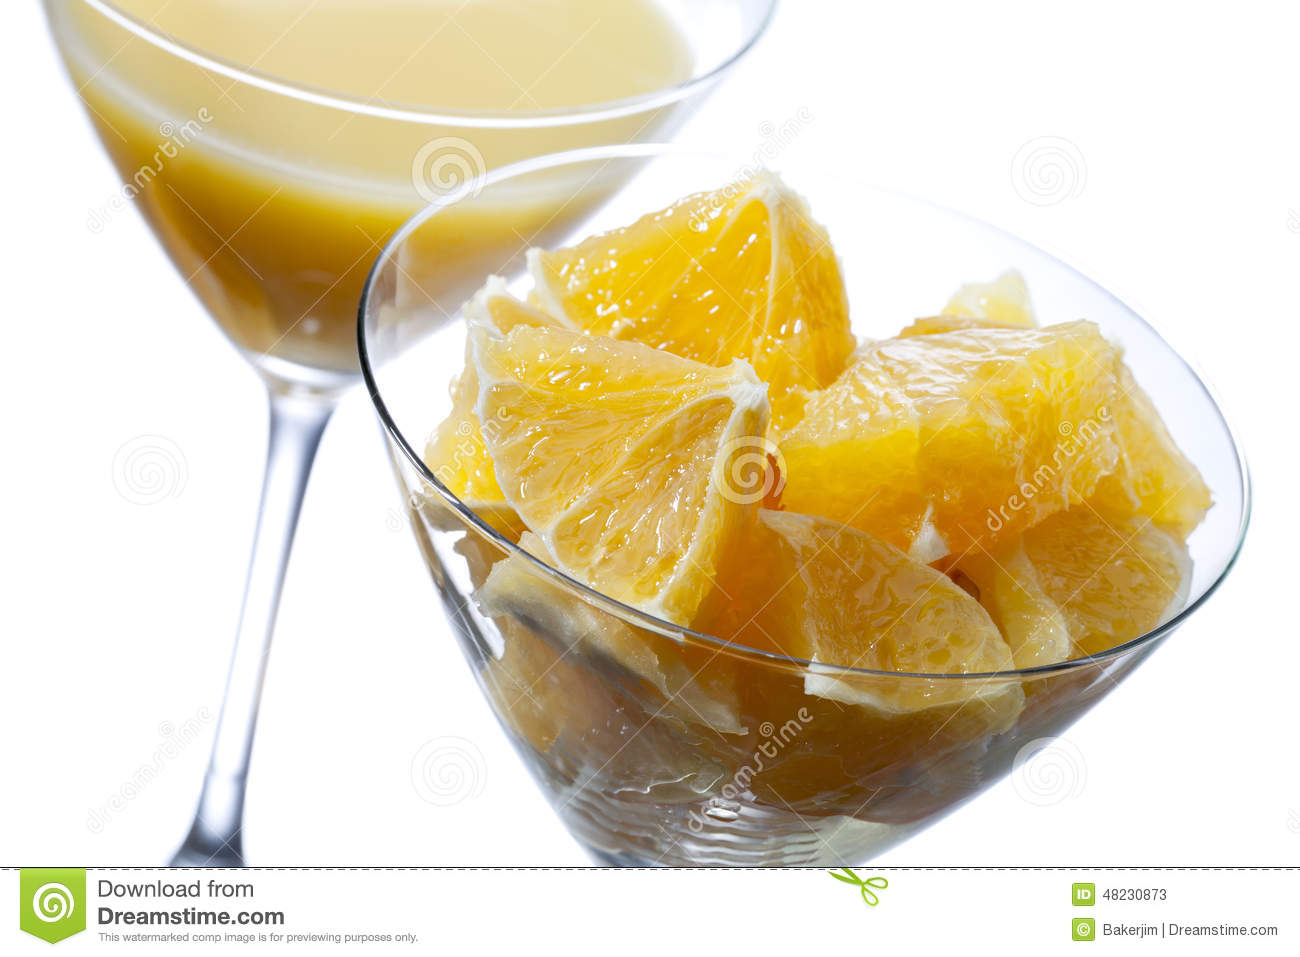 Twee martini-glas met jus d orange